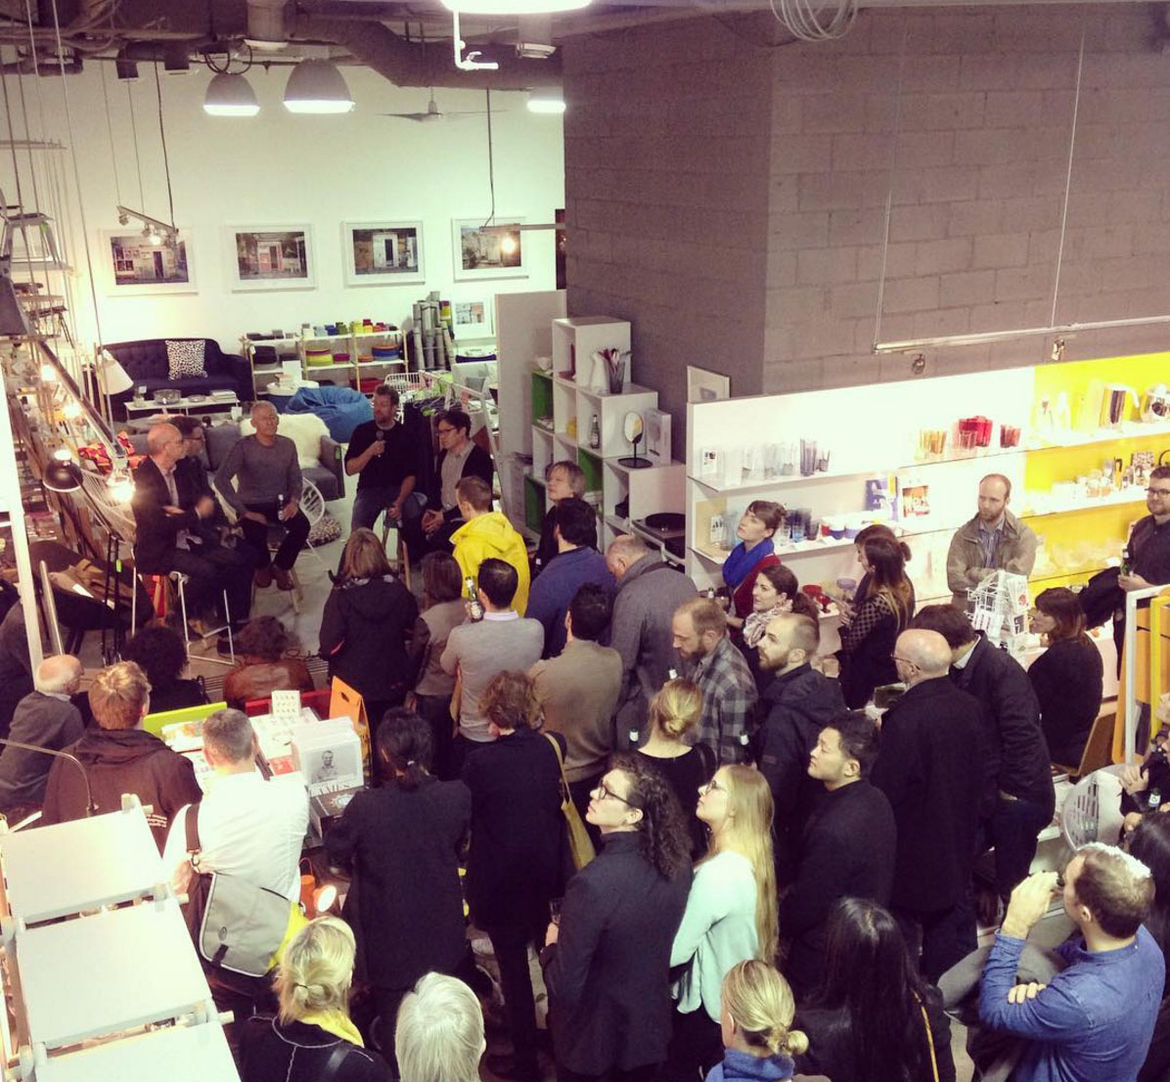 Gathering at the design store Vancouver Special.